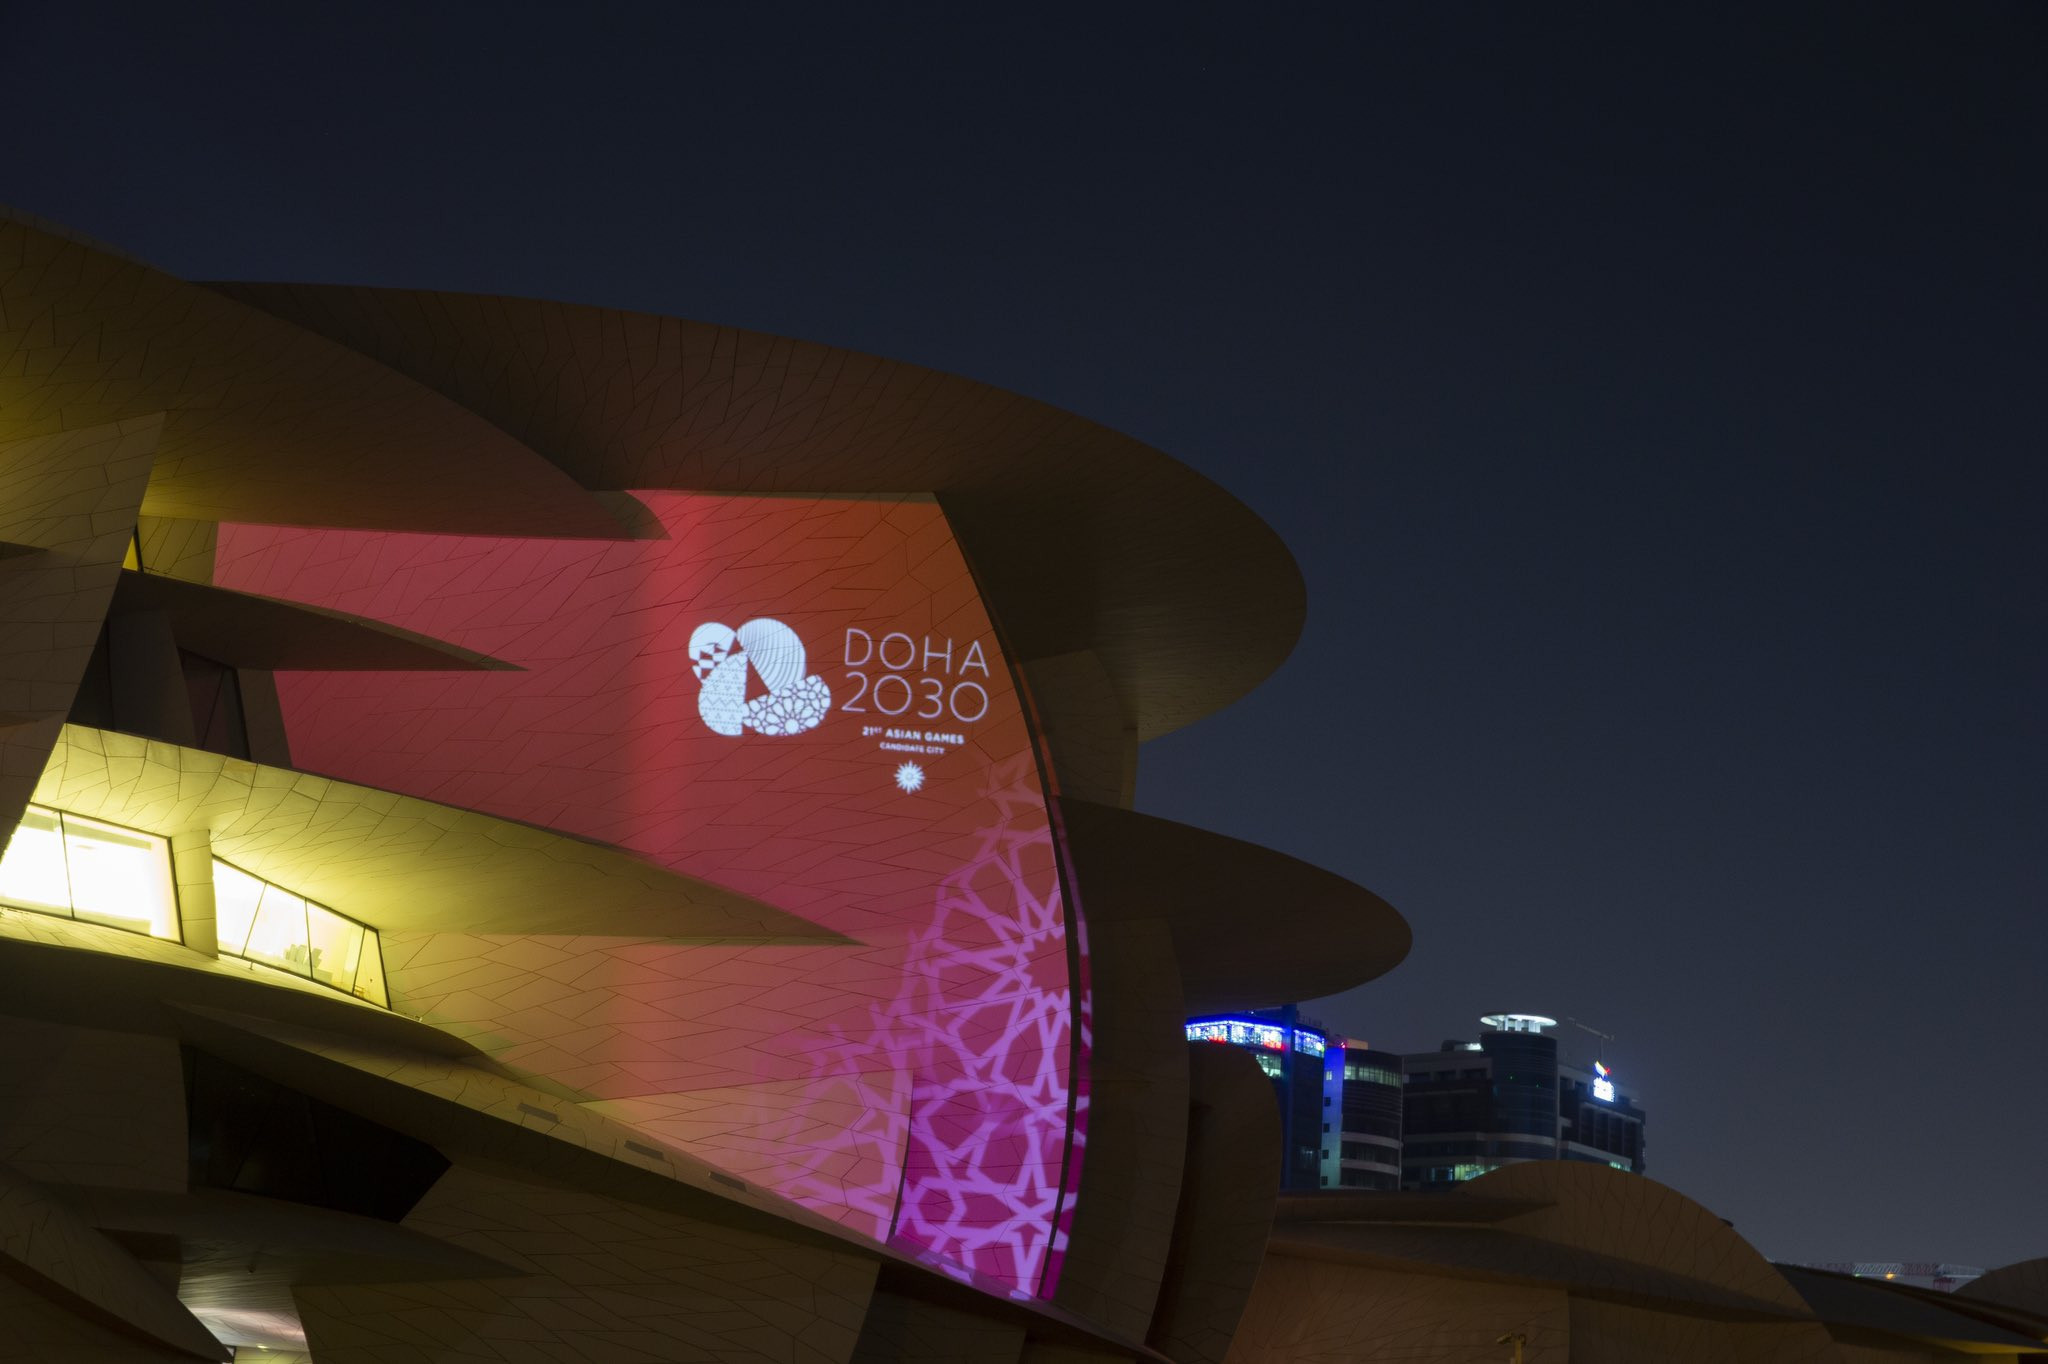 Doha launch logo and campaign slogan for 2030 Asian Games bid